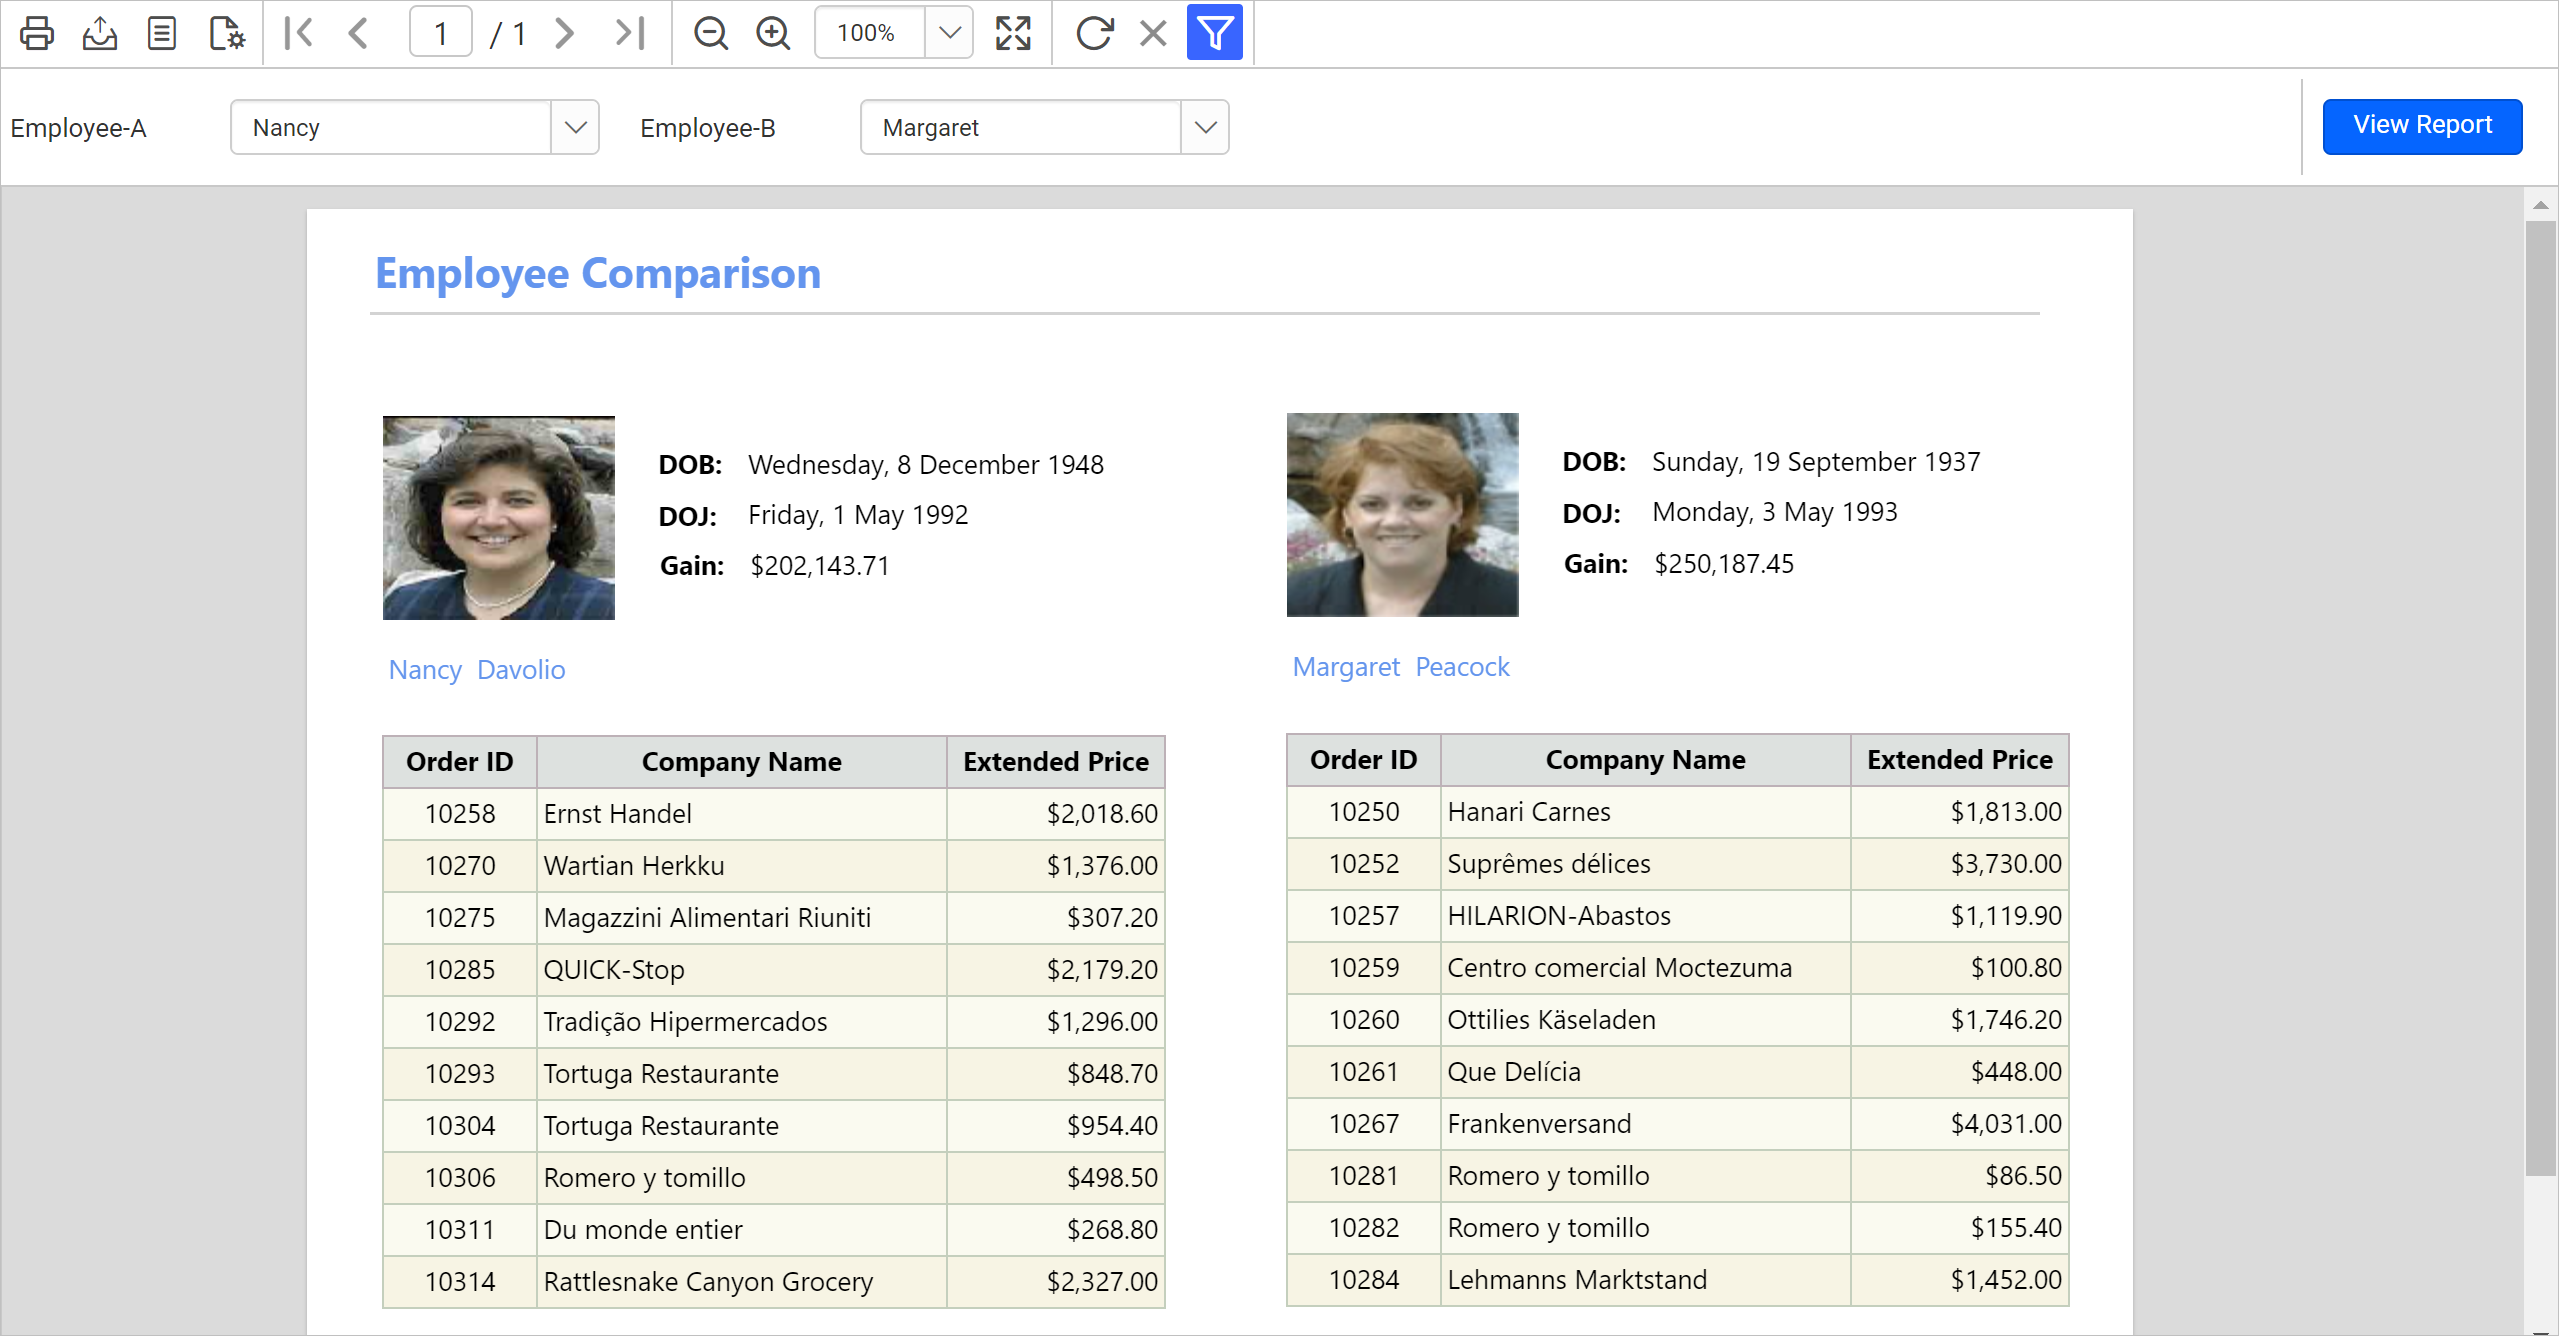 Preview: Displays comparison data of employees